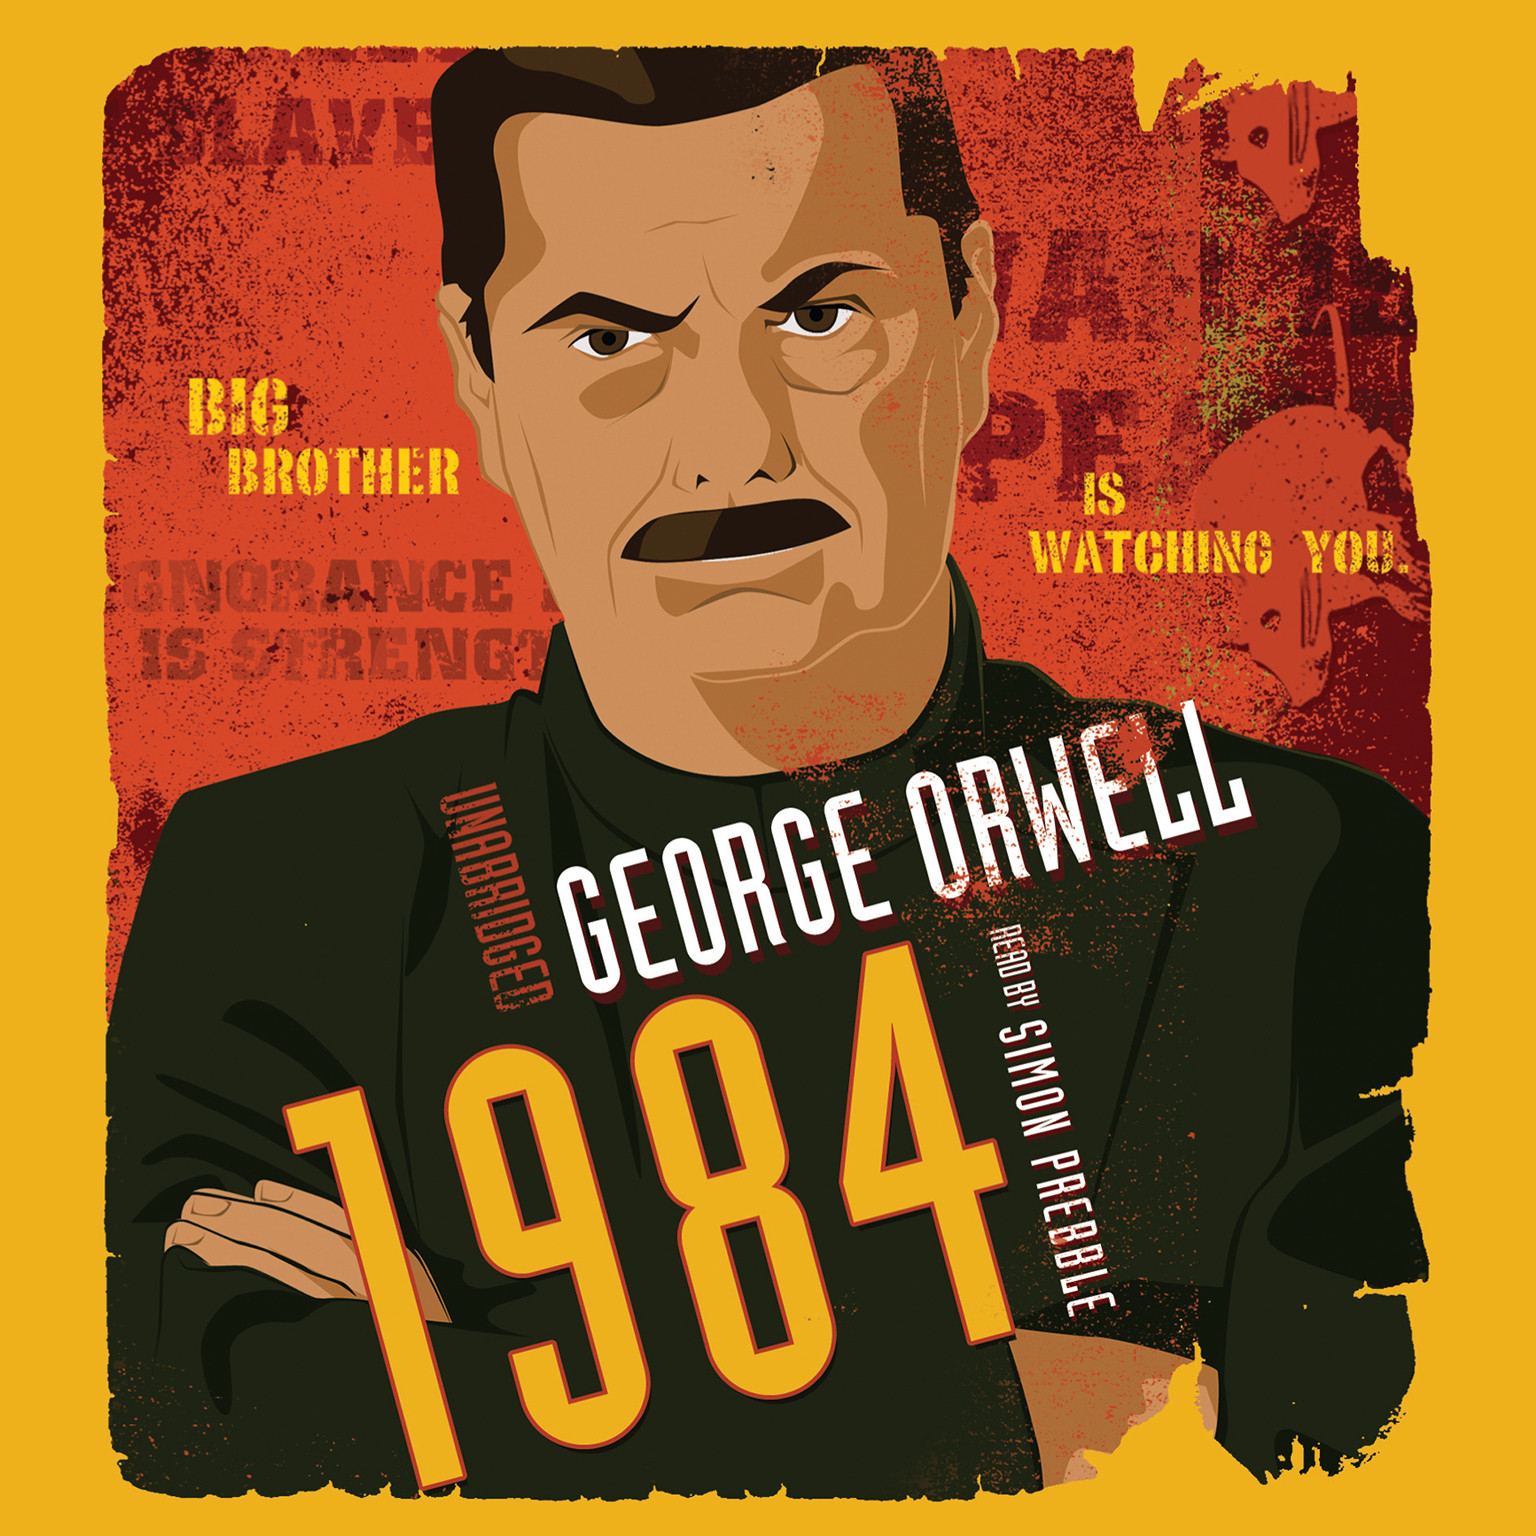 hear 1984 audiobook by george orwell for just 5 95 extended audio sample 1984 audiobook by george orwell